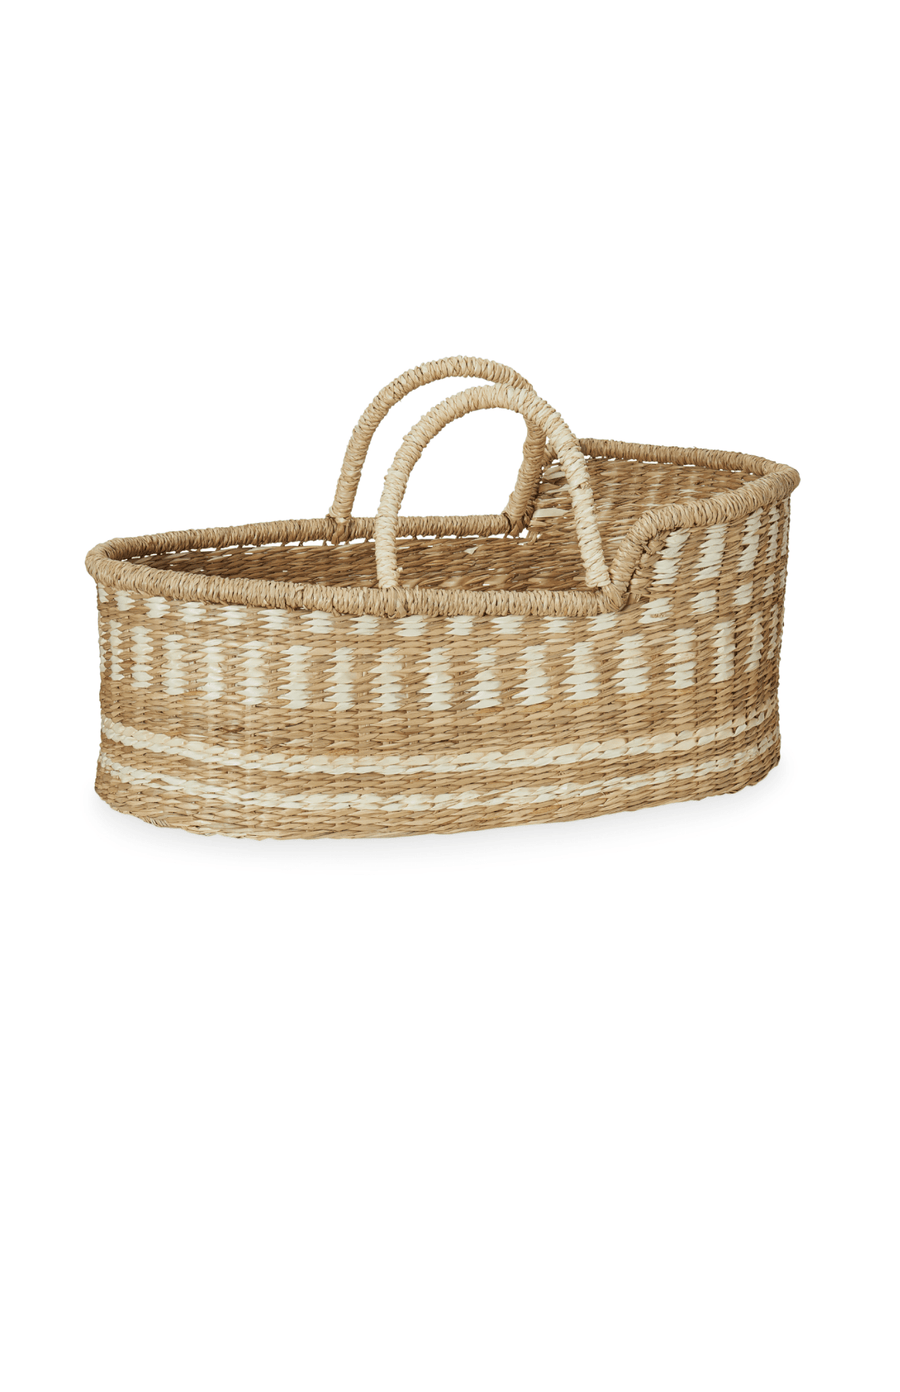 Cam Cam Copenhagen Dolls Moses Baskets - Natural